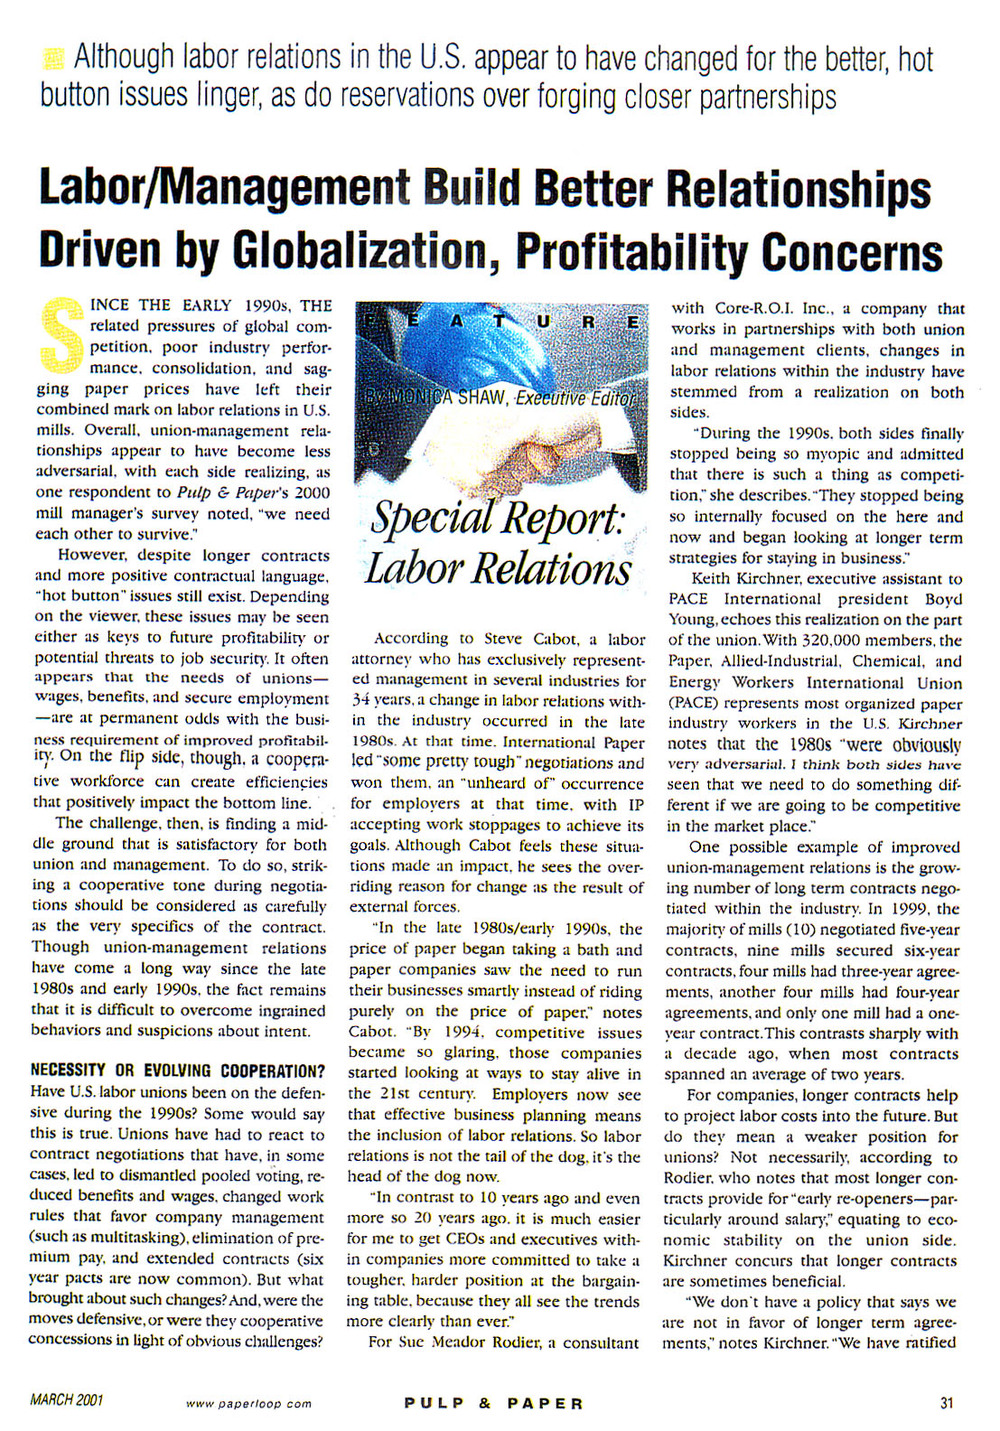 pulp & paper-march 2001-labormanagement build better relations driven by globalization, profitability concerns  page 1.jpg